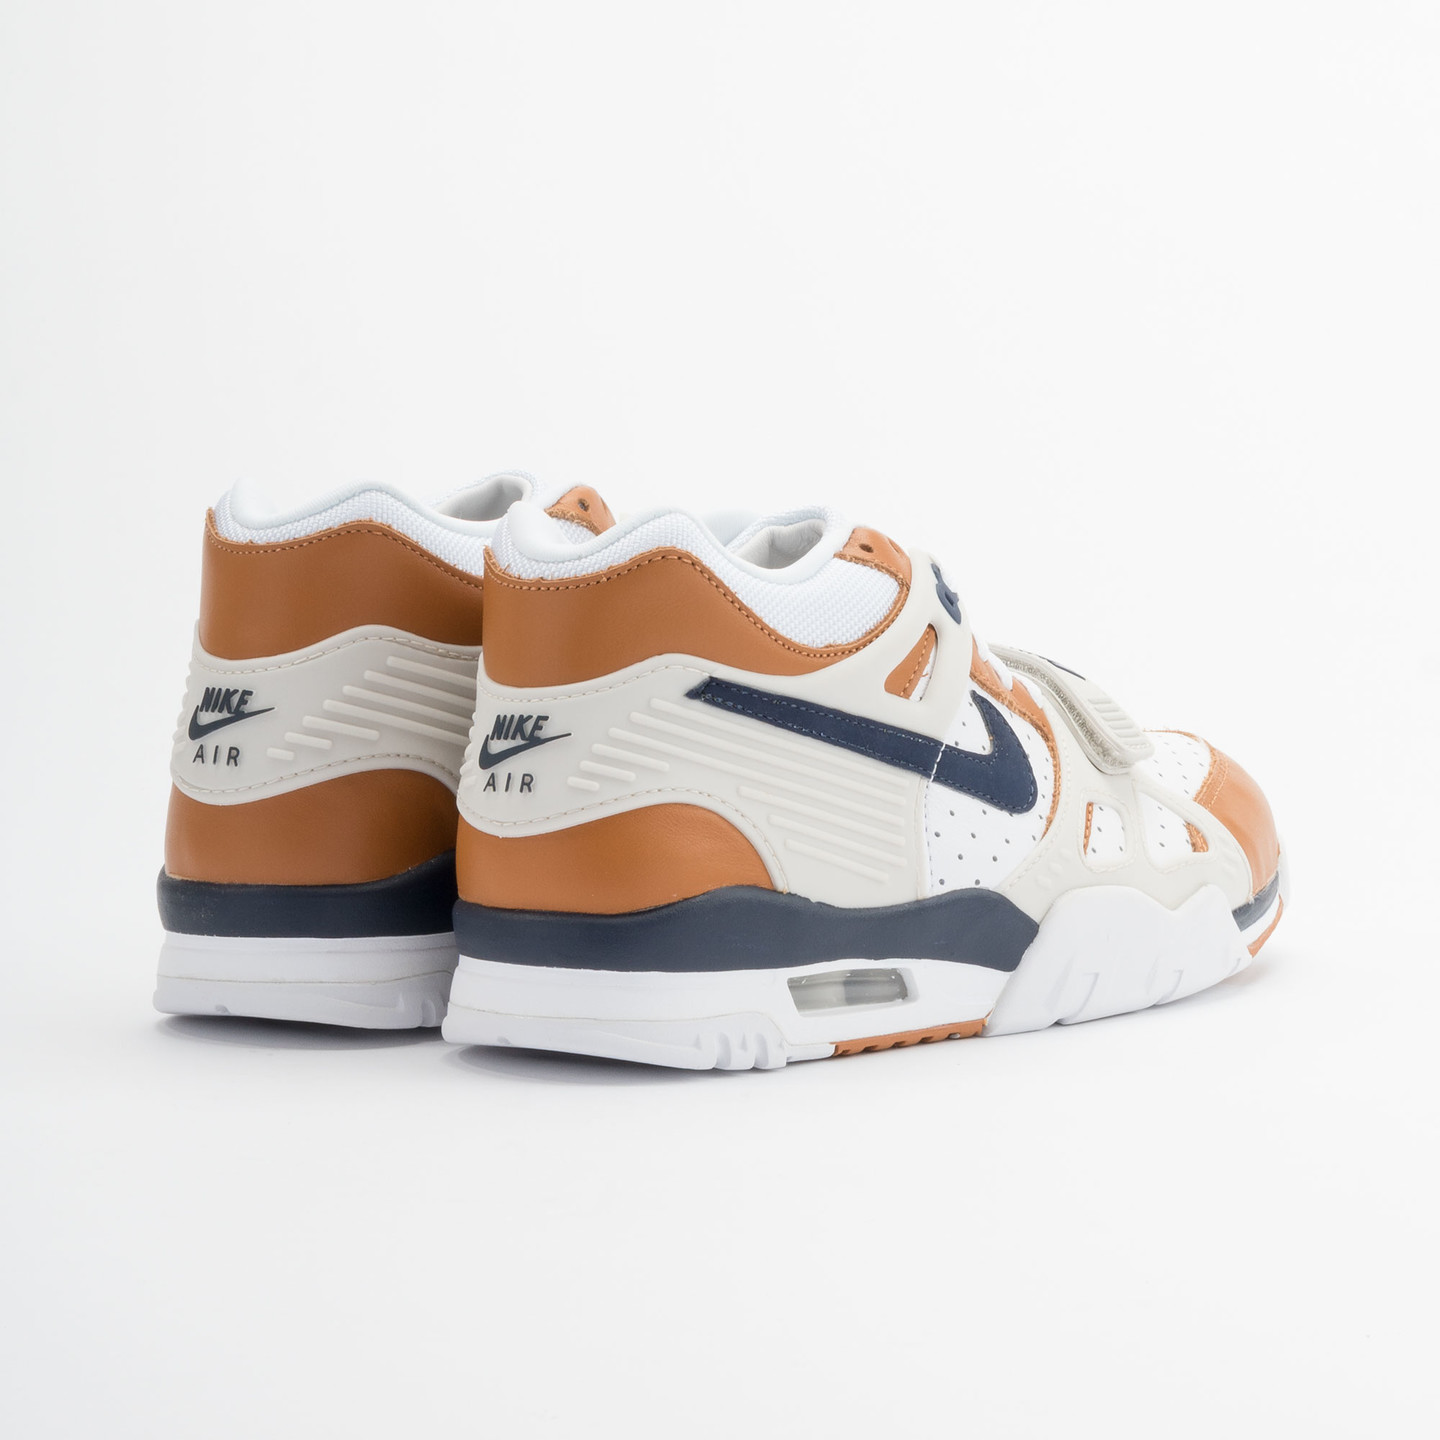 Nike Air Trainer 3 Premium Medicine Ball White/Mid Navy-Gngr-Lght Bn 705425-100-44.5